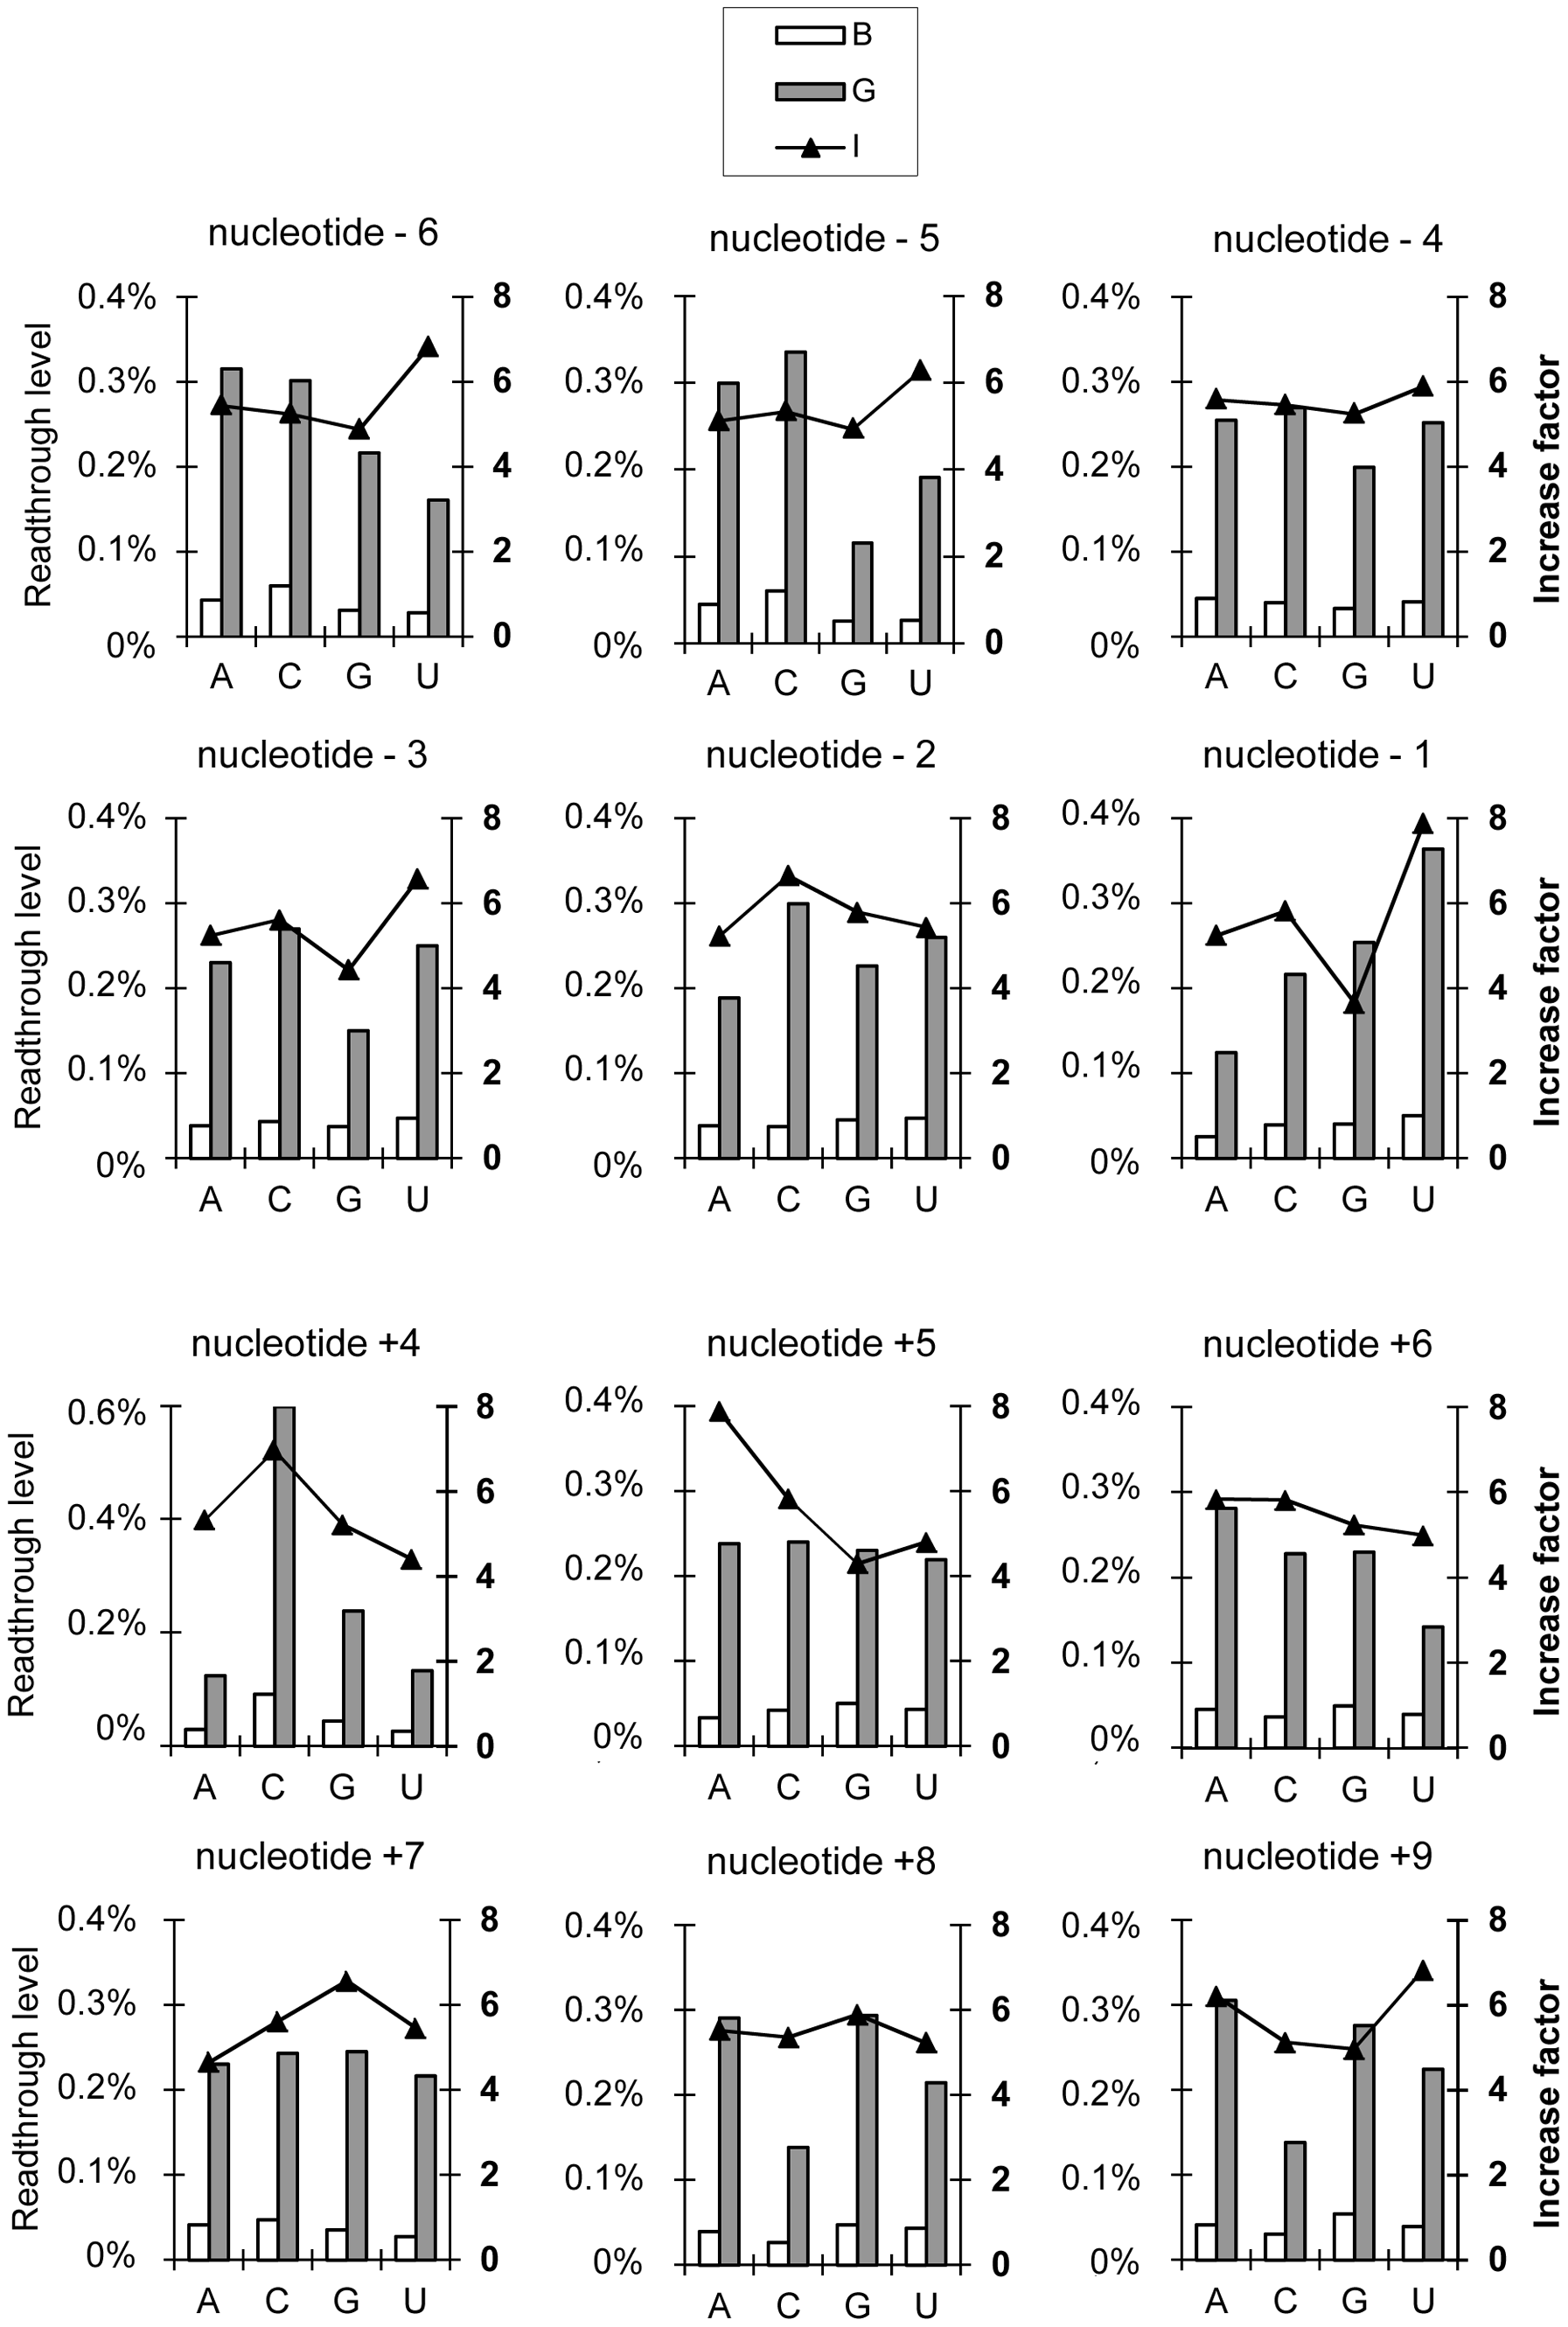 Effect of nucleotide identity at each position (−6 to +9) on readthrough levels and the factor of increase.